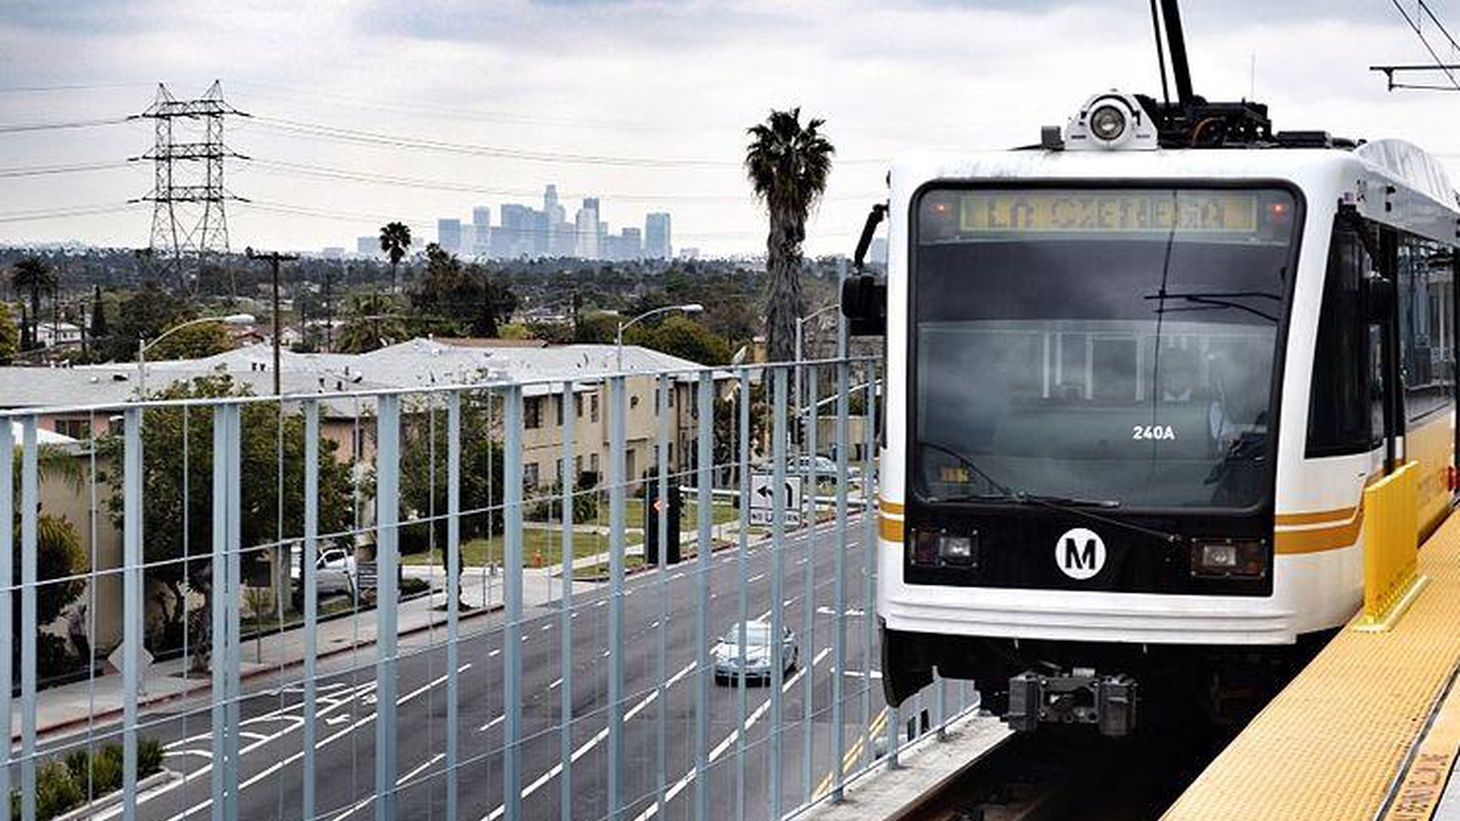 Westside commuters get their first chance to take rapid transit downtown. Also, LA County Assessor denies doing favors for campaign donors. And how about them Clippers?